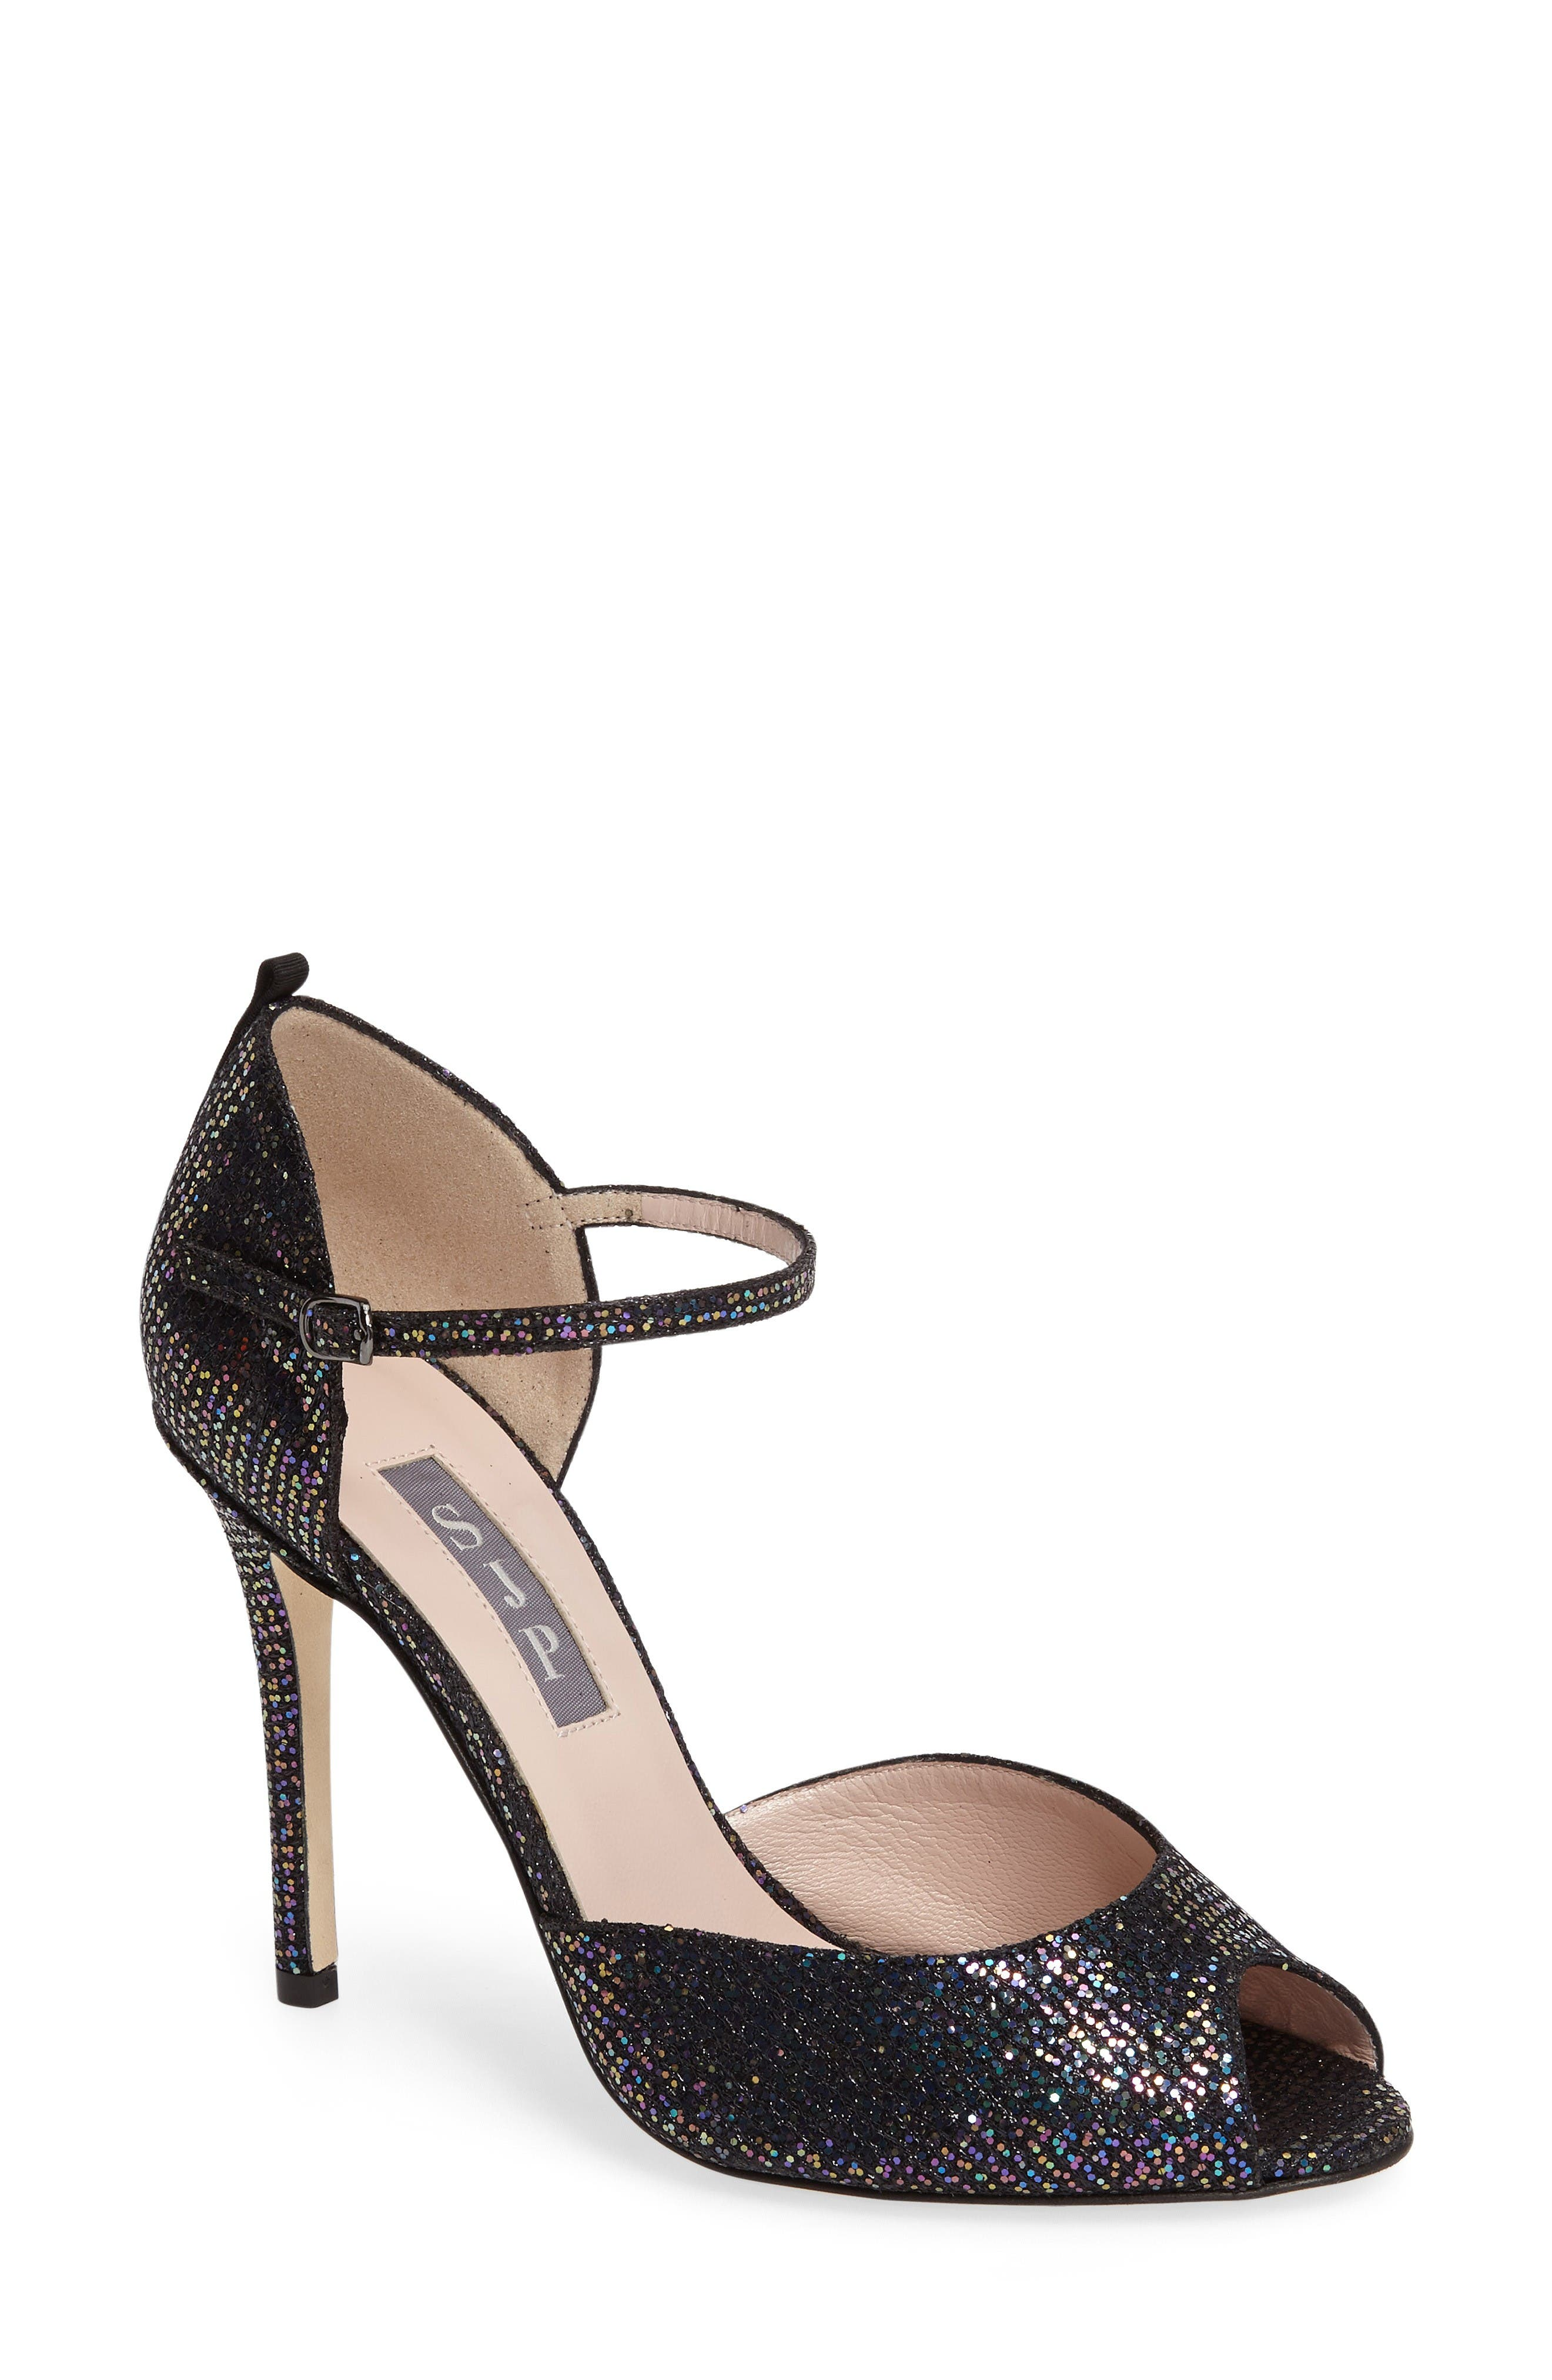 Main Image - SJP by Sarah Jessica Parker by Sarah Jessica Parker 'Ursula' Open Toe d'Orsay Metallic Leather Pump